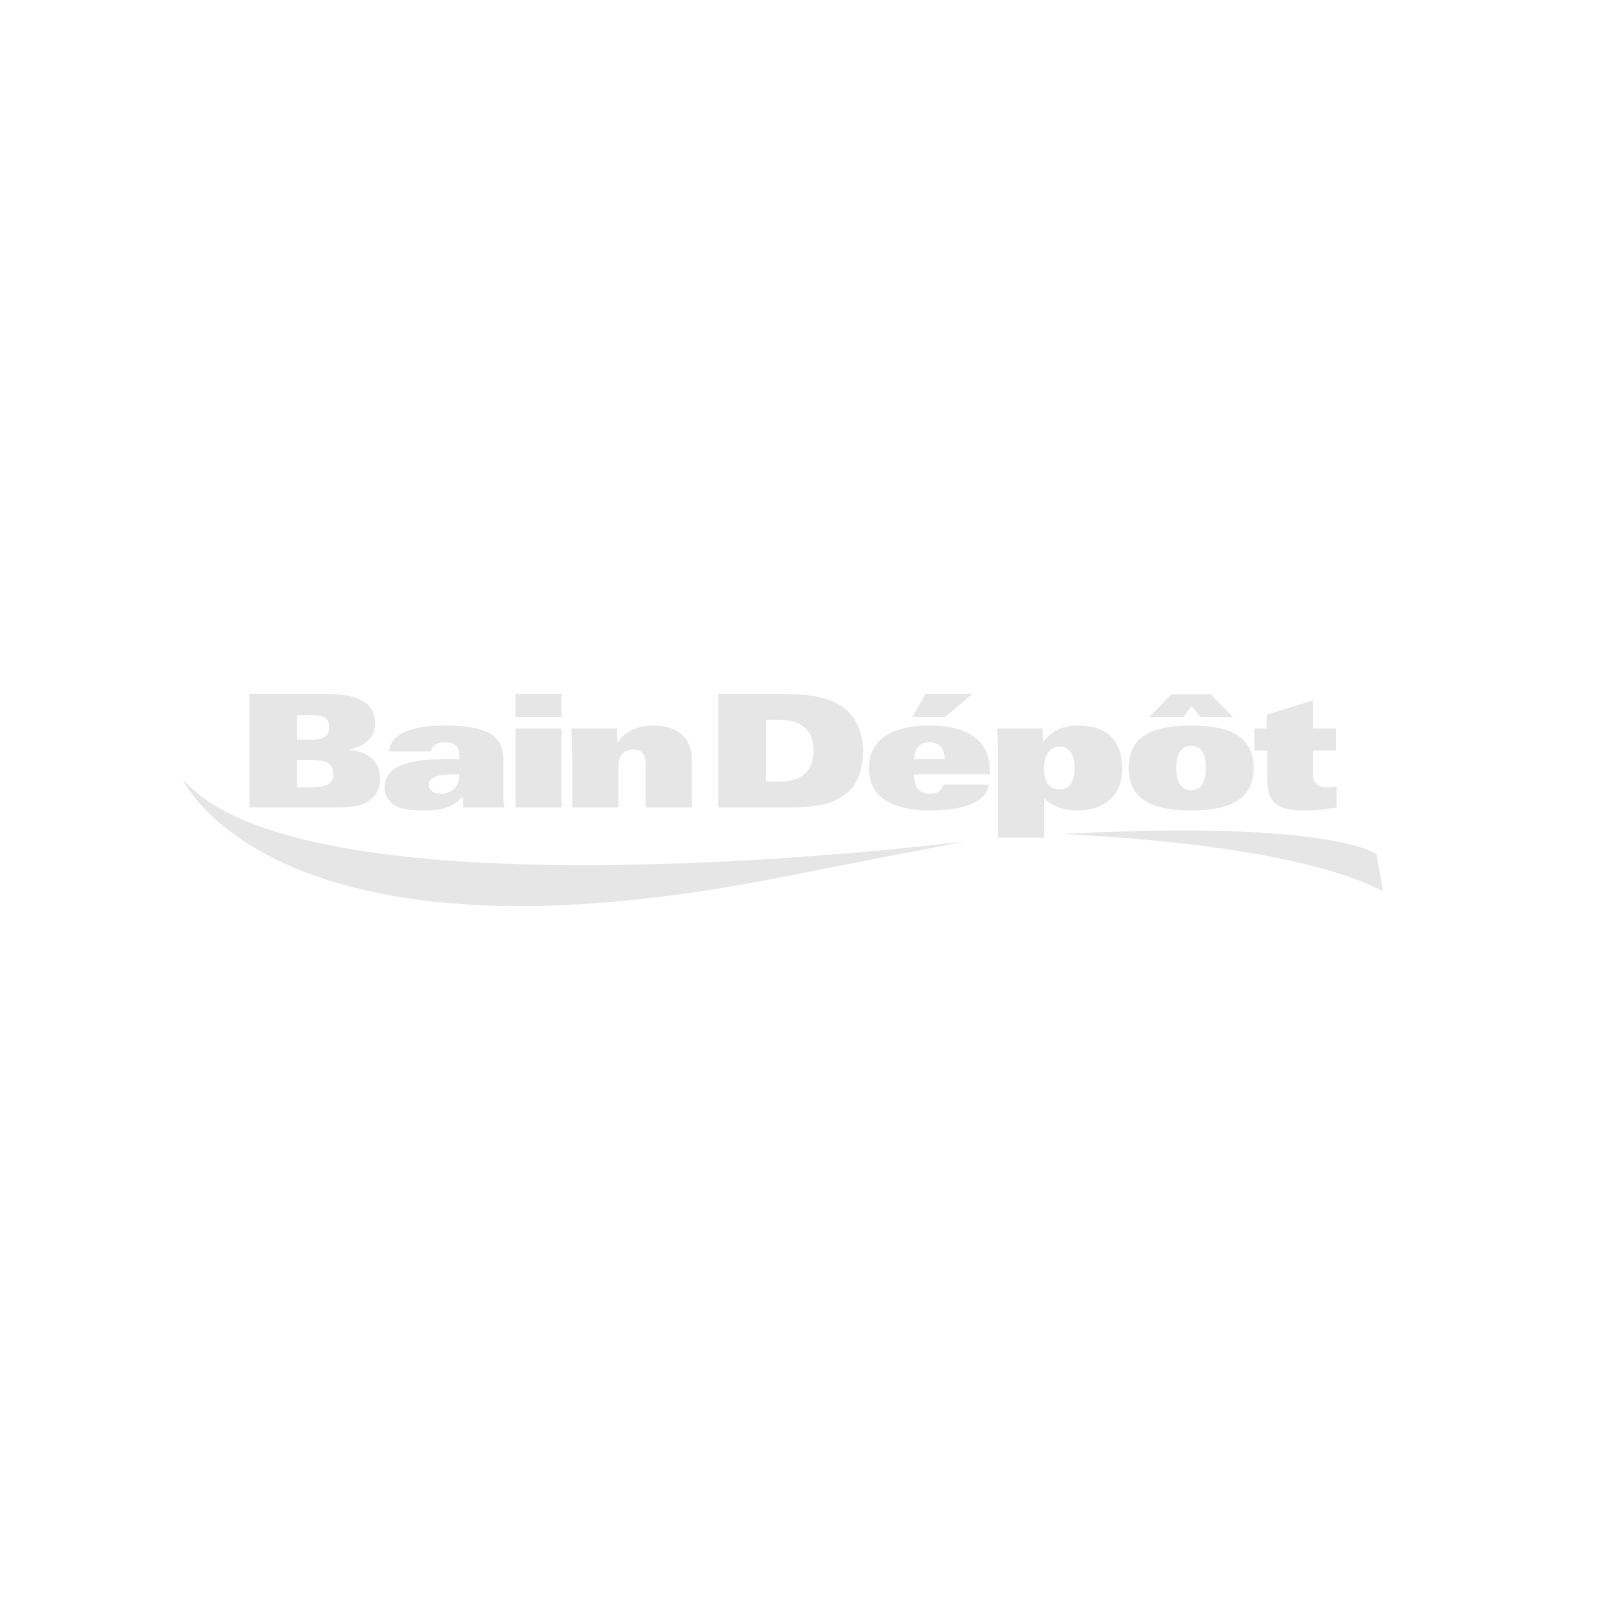 Extendable matte black bathtub caddy